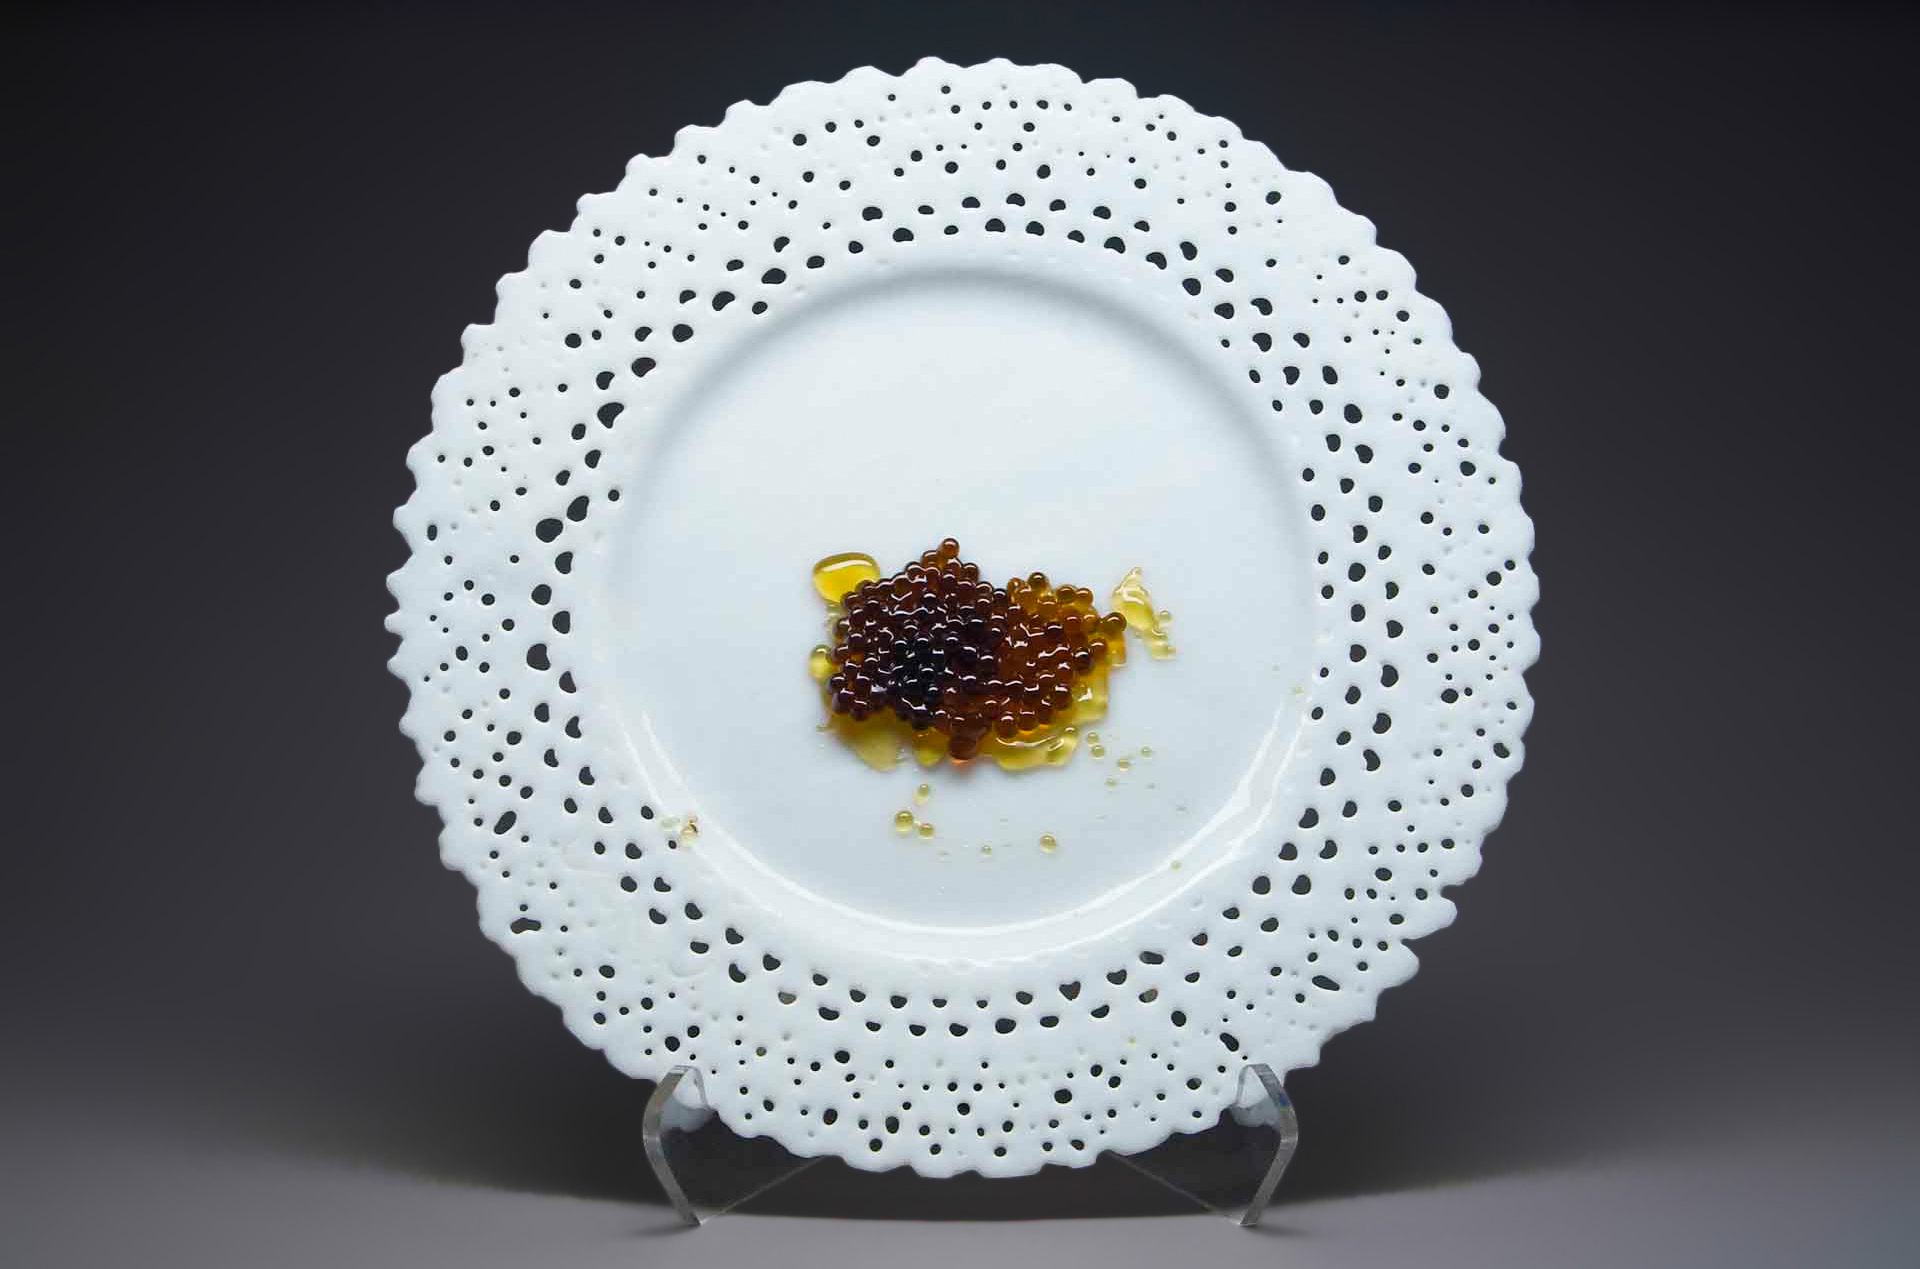 LacePlateWithHoneycomb_edit_cropped.jpg